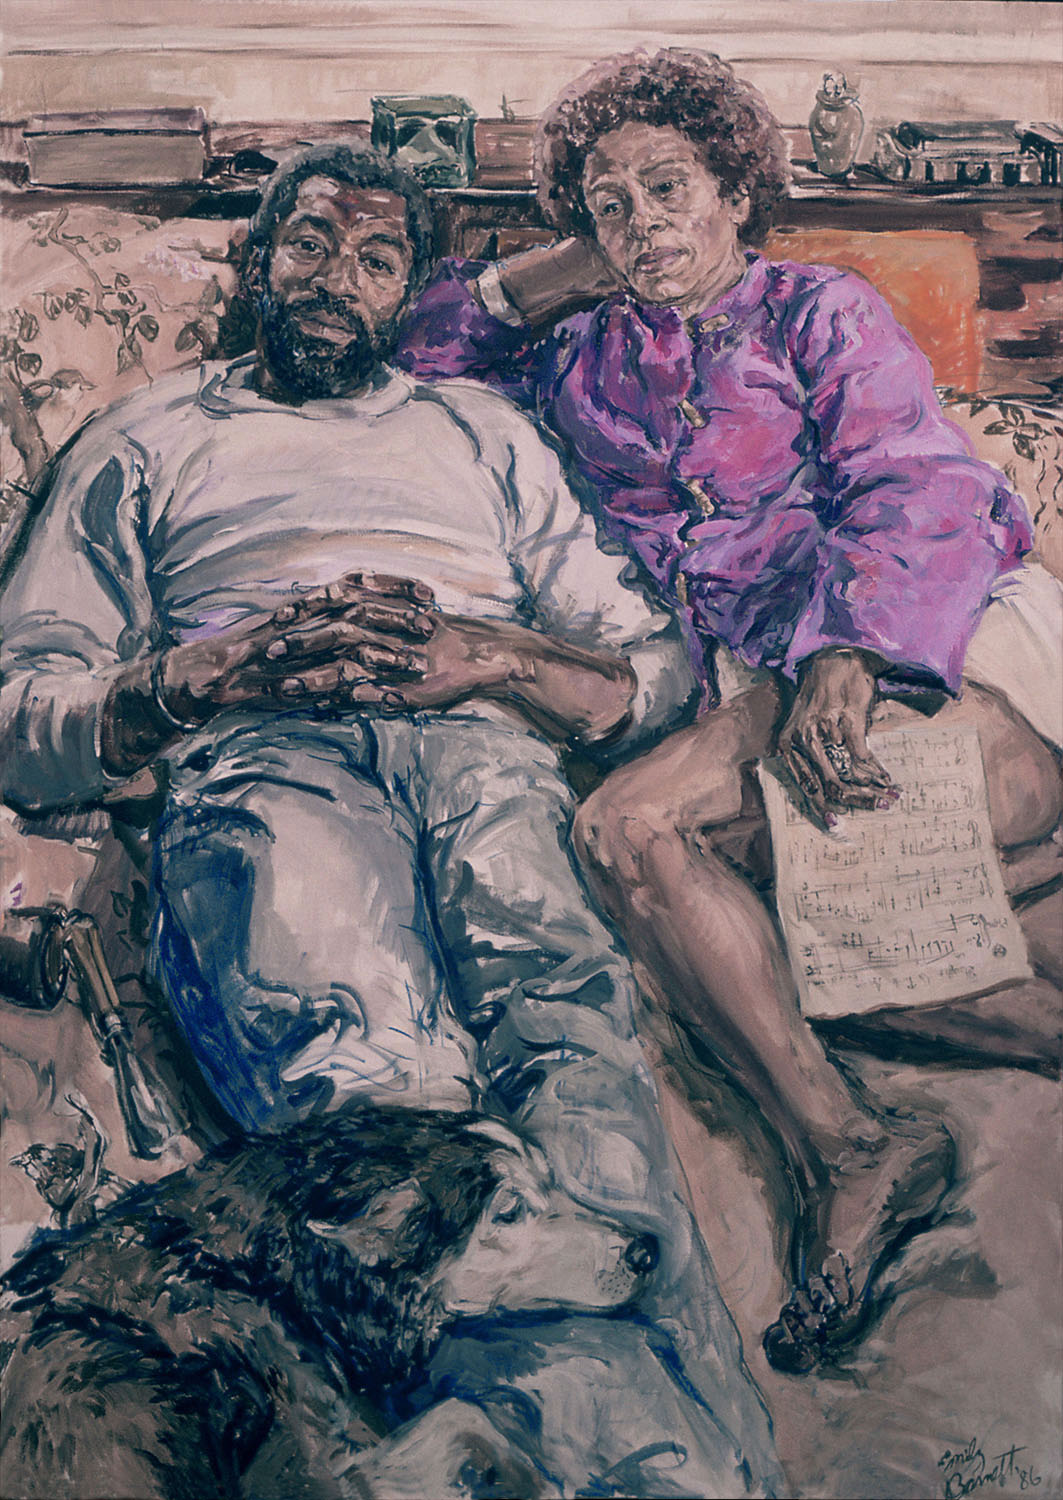 Faust and Miriam, 1986, Oil on Canvas, 55 x 42